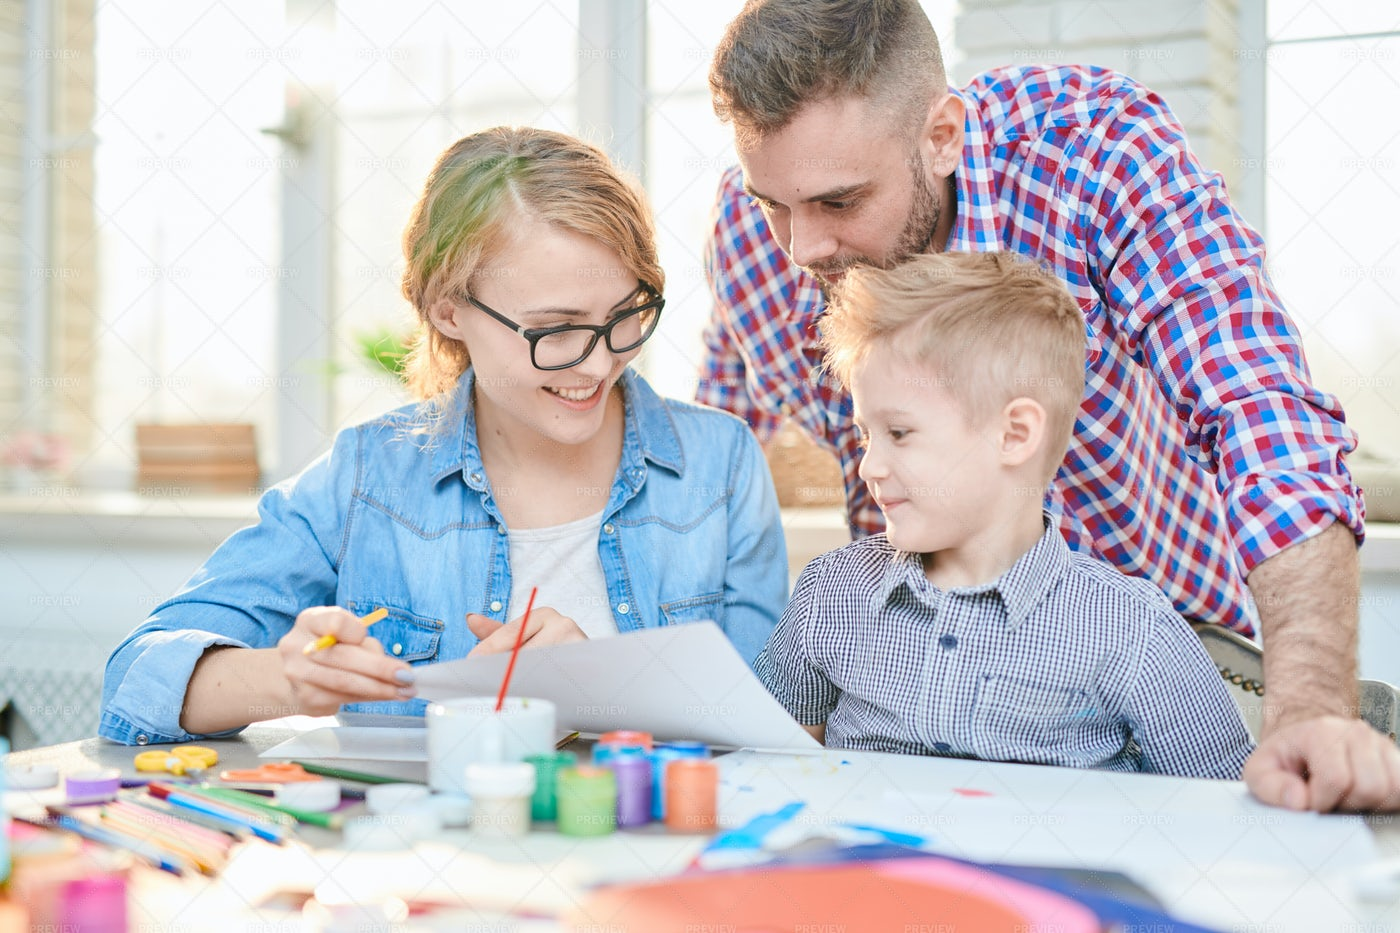 Family Crafting Together At Home: Stock Photos